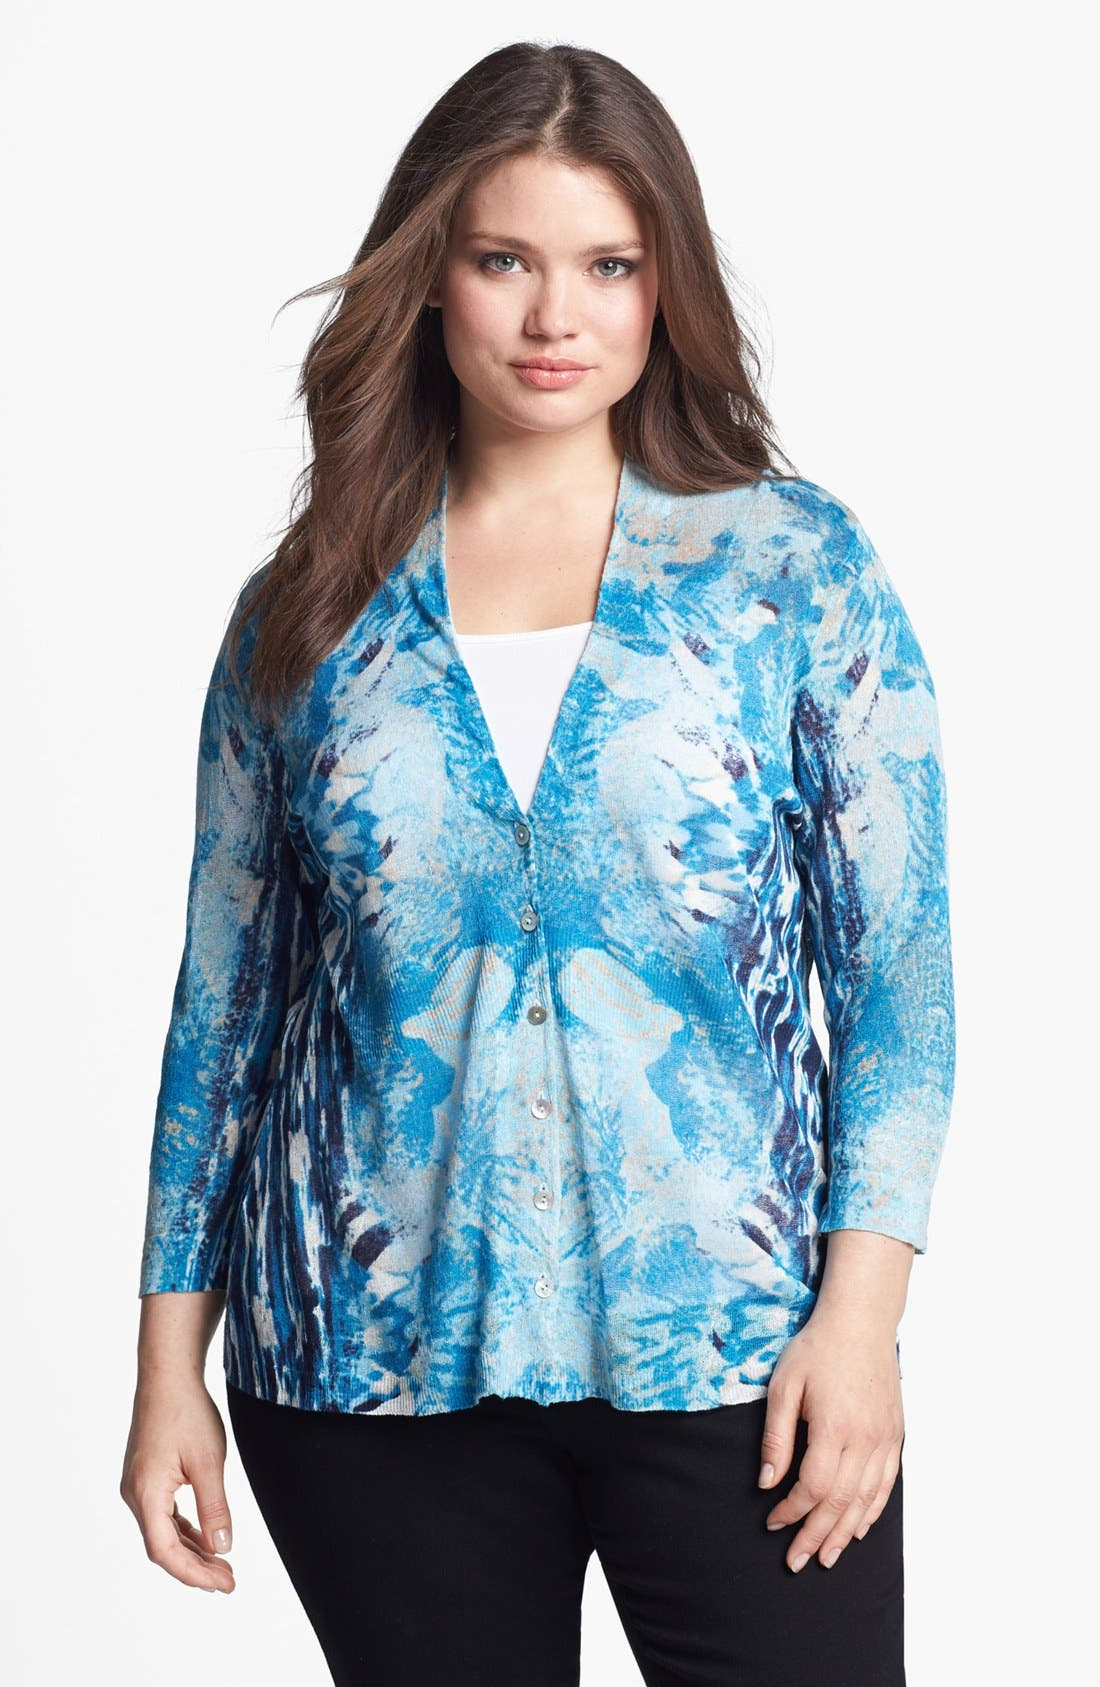 Alternate Image 1 Selected - Nic + Zoe 'High Tide' Print Cardigan (Plus Size)